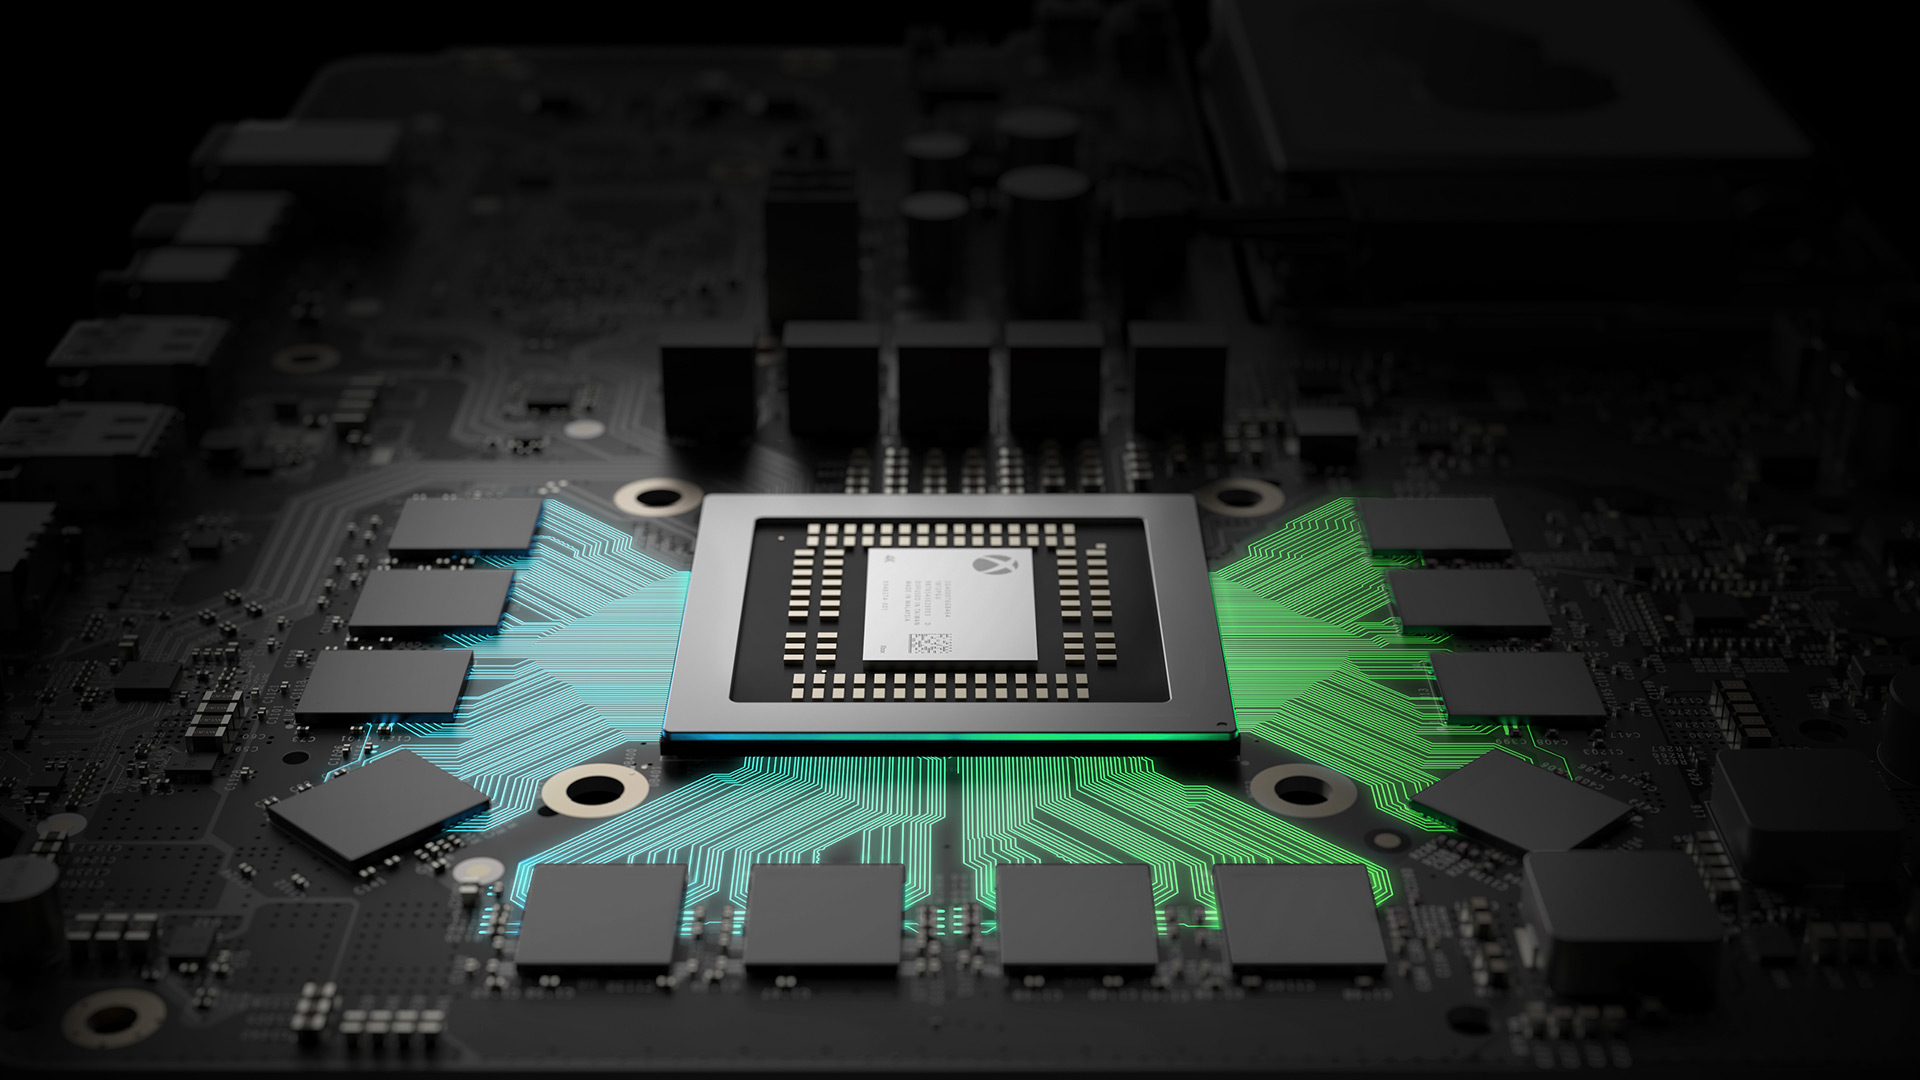 Project Scorpio Allows Players to Install Games On External Hard Drive